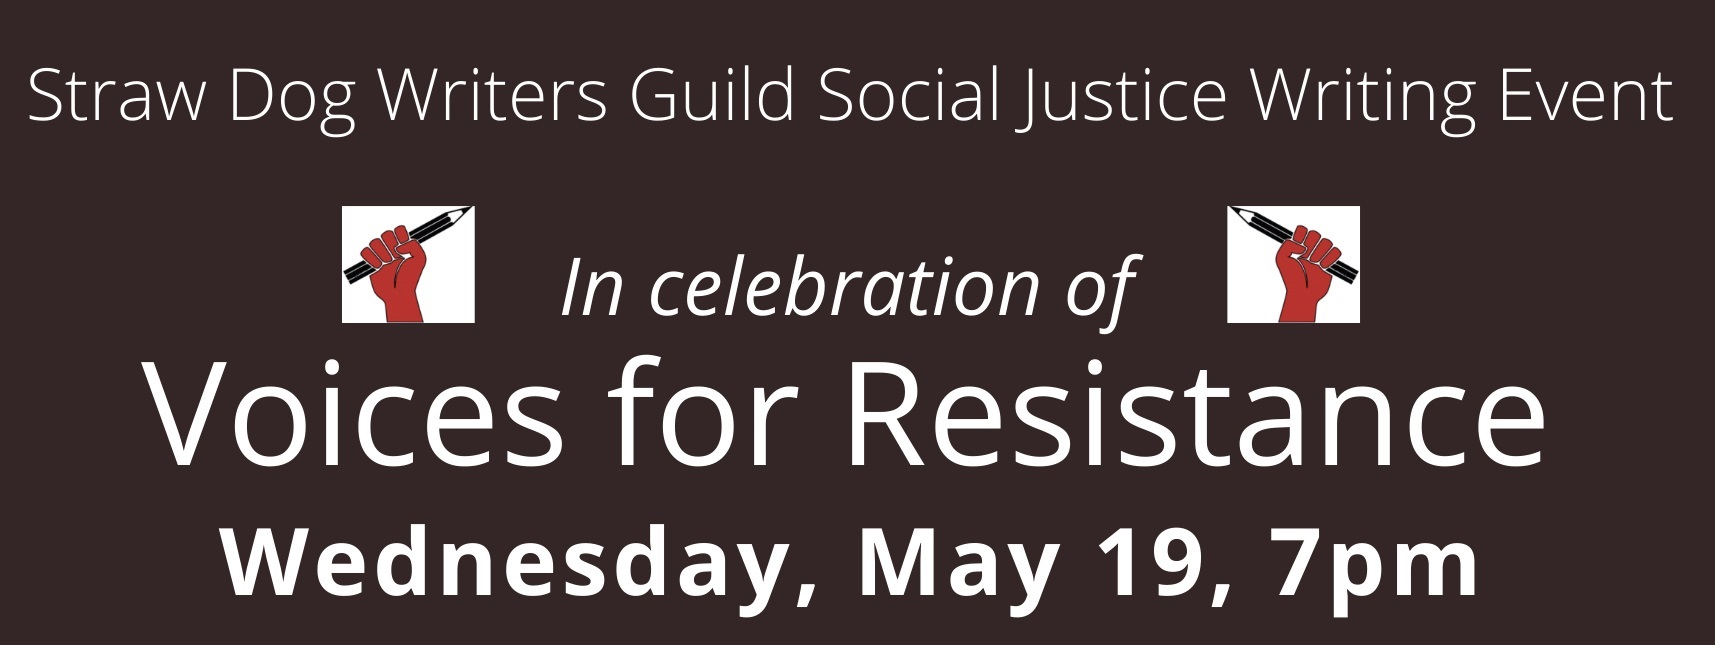 Voices for Resistance event banner